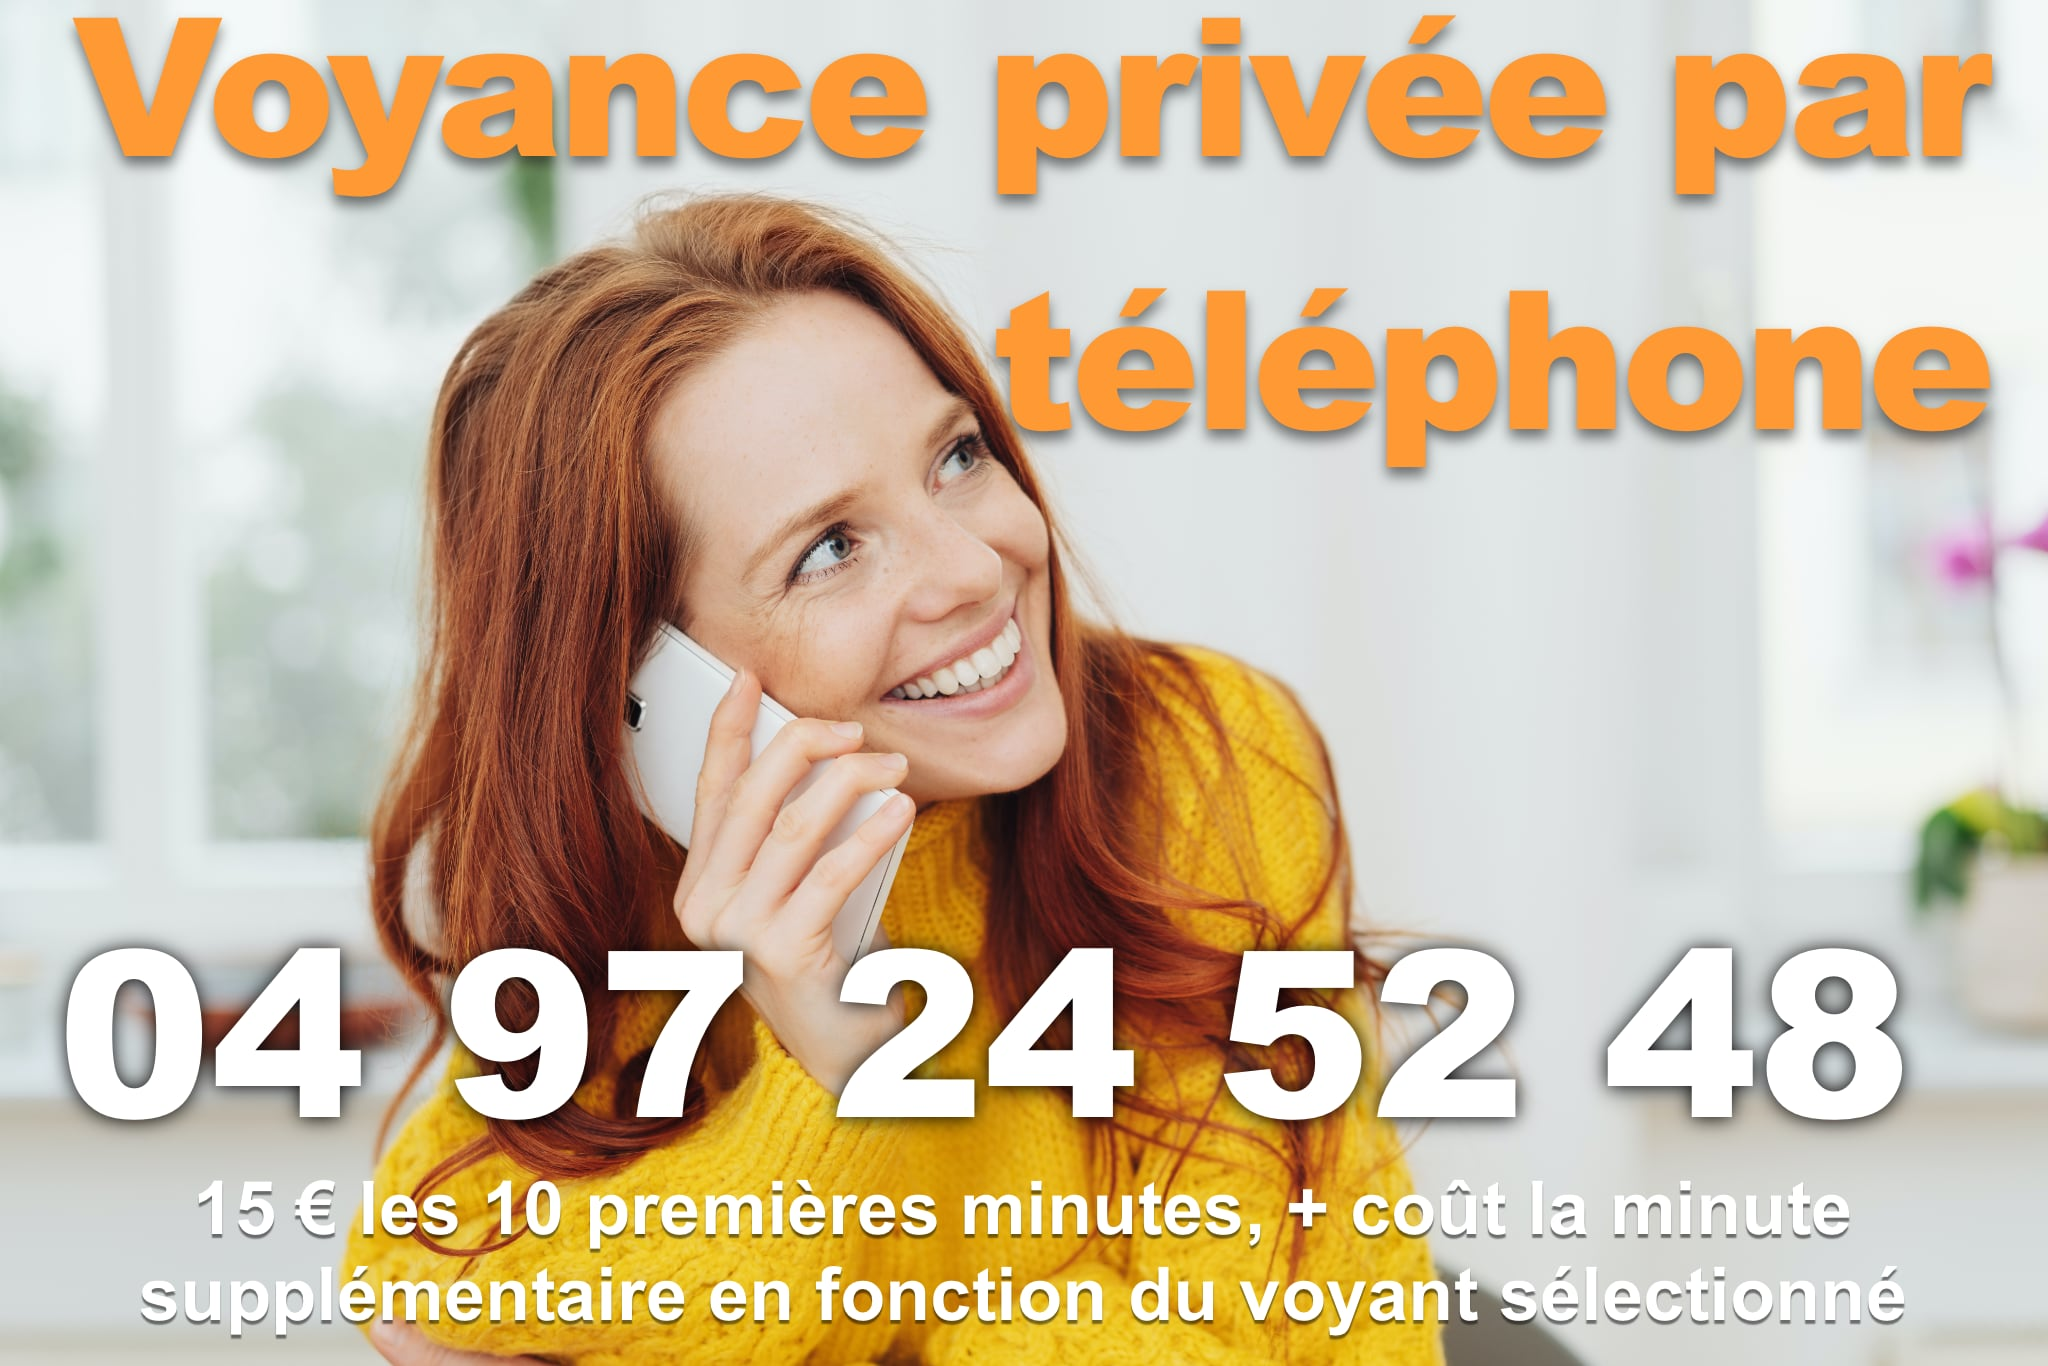 voyance privee par telephone